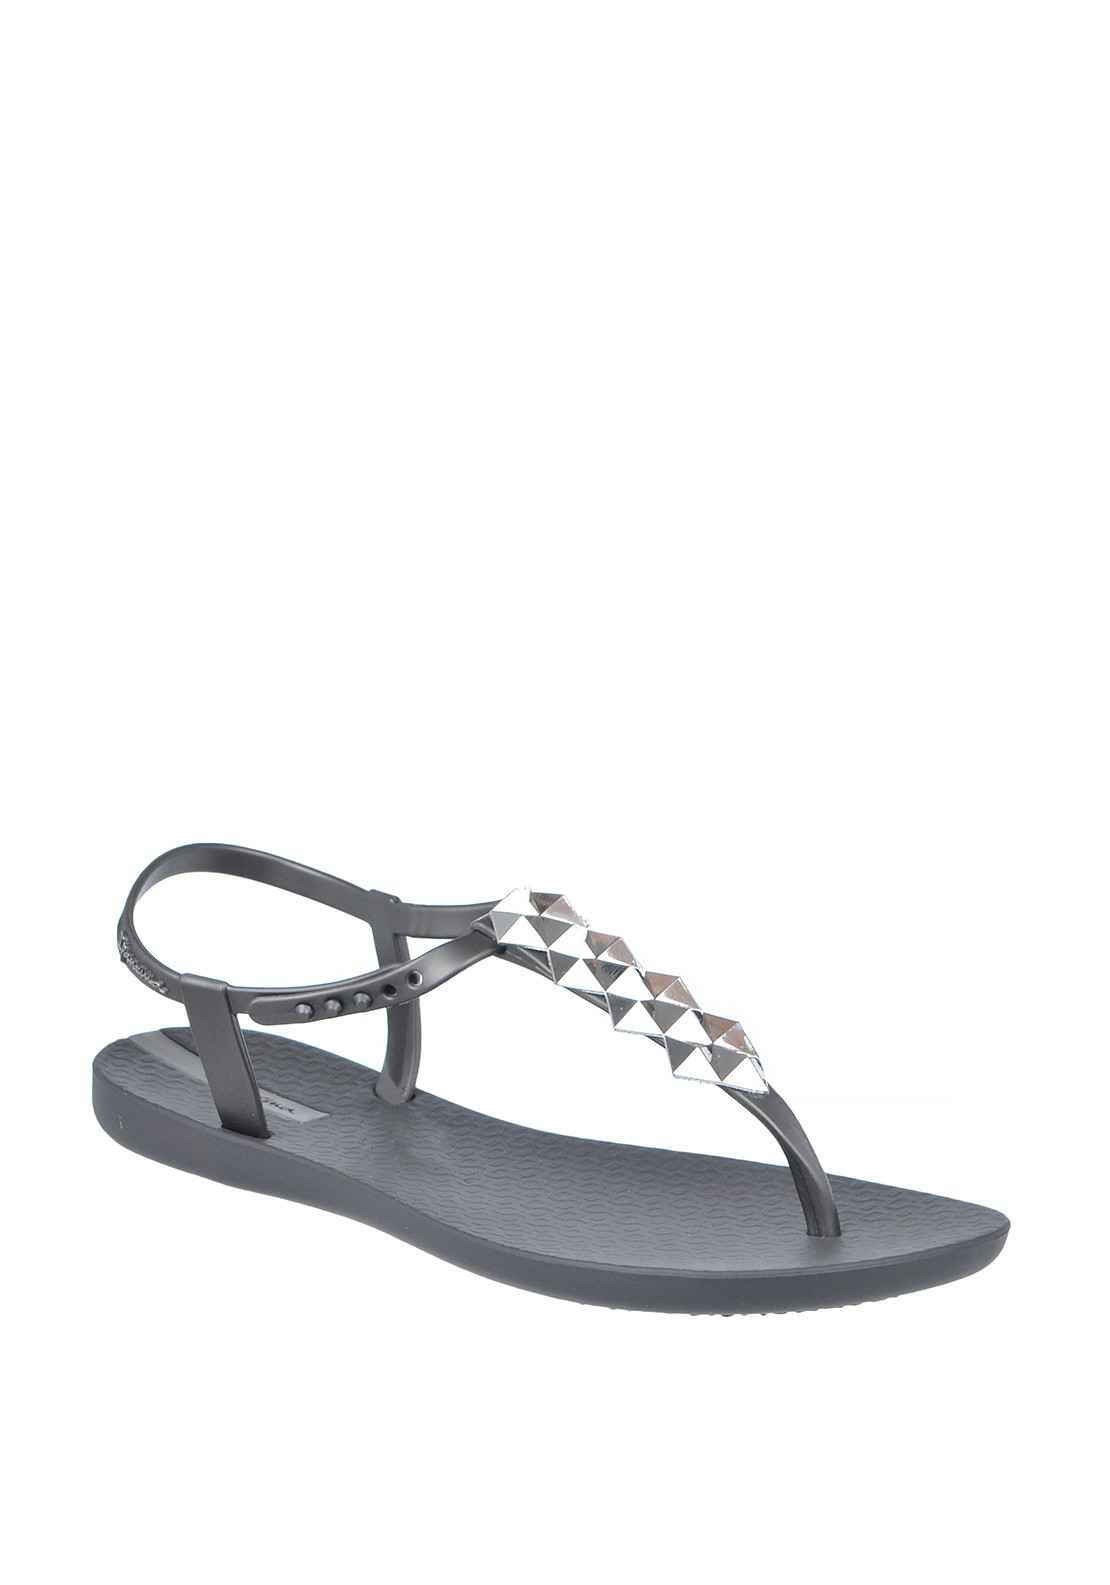 Ipanema Stud Embellished Toe Thong Sandals, Grey